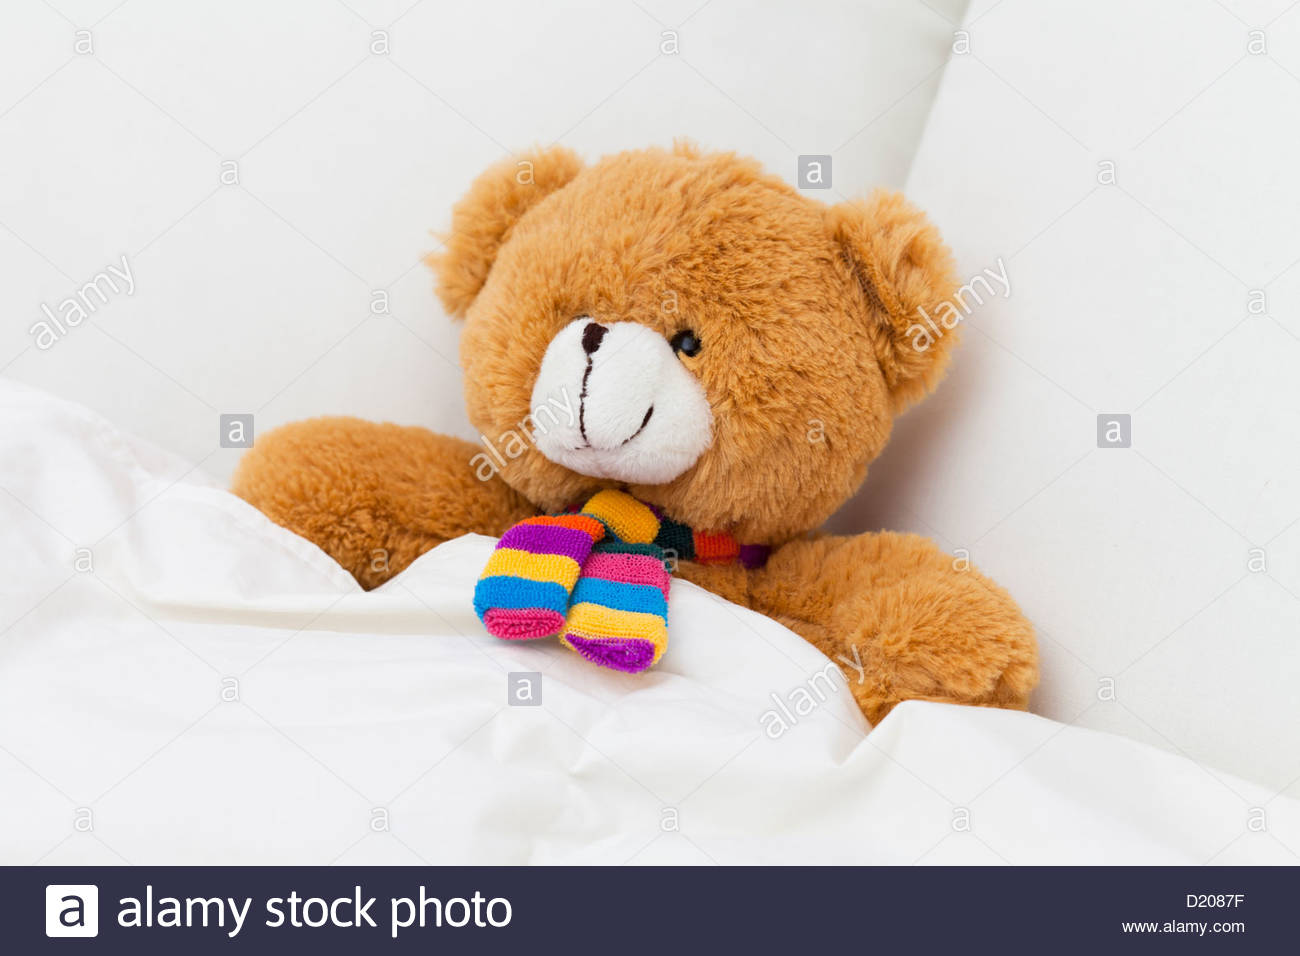 teddy bear sleeping in a bed stock photo royalty free image